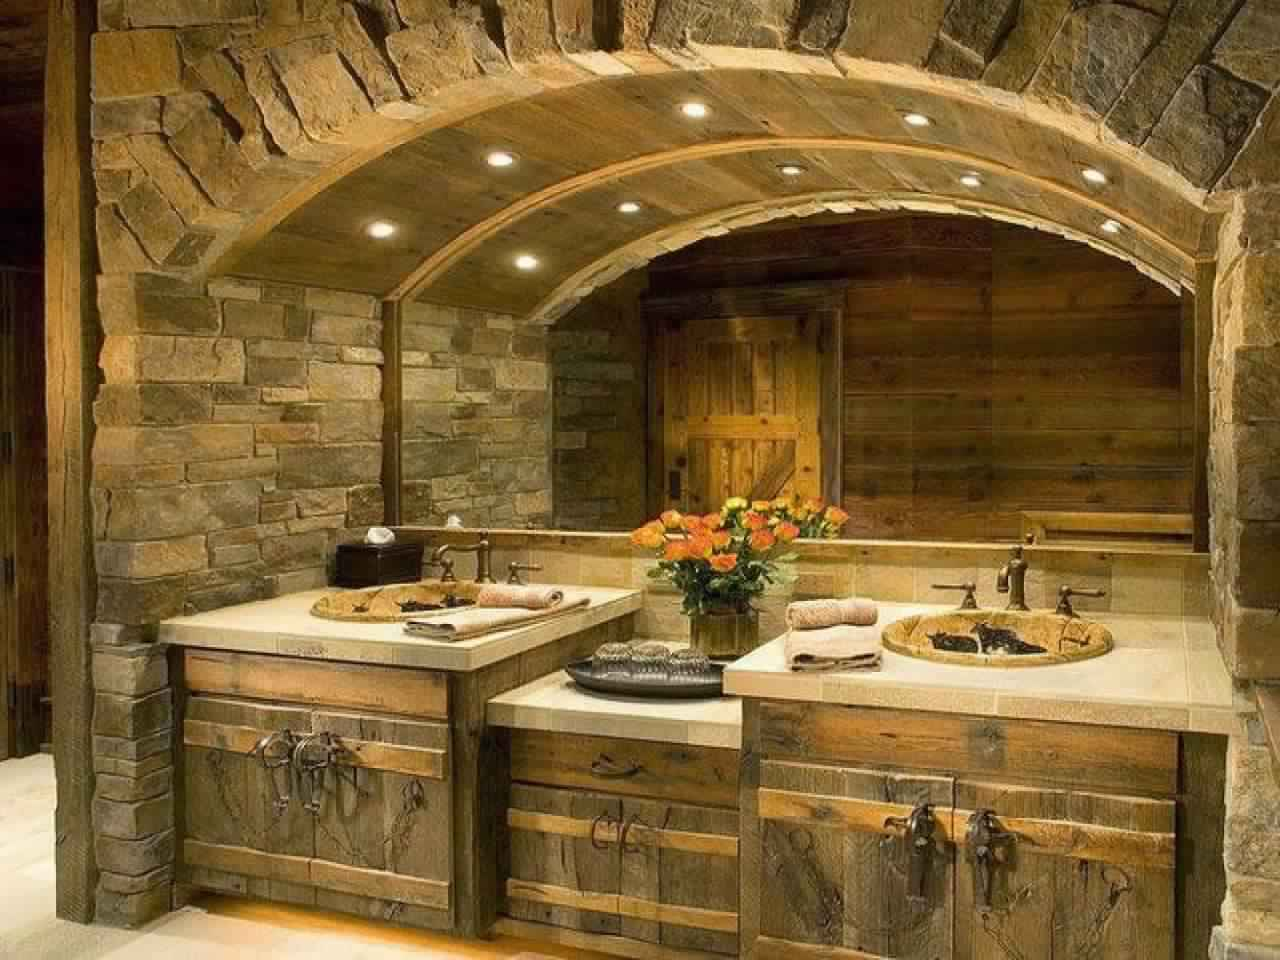 Rustic Bathroom Ideas-Remodeling Bathroom